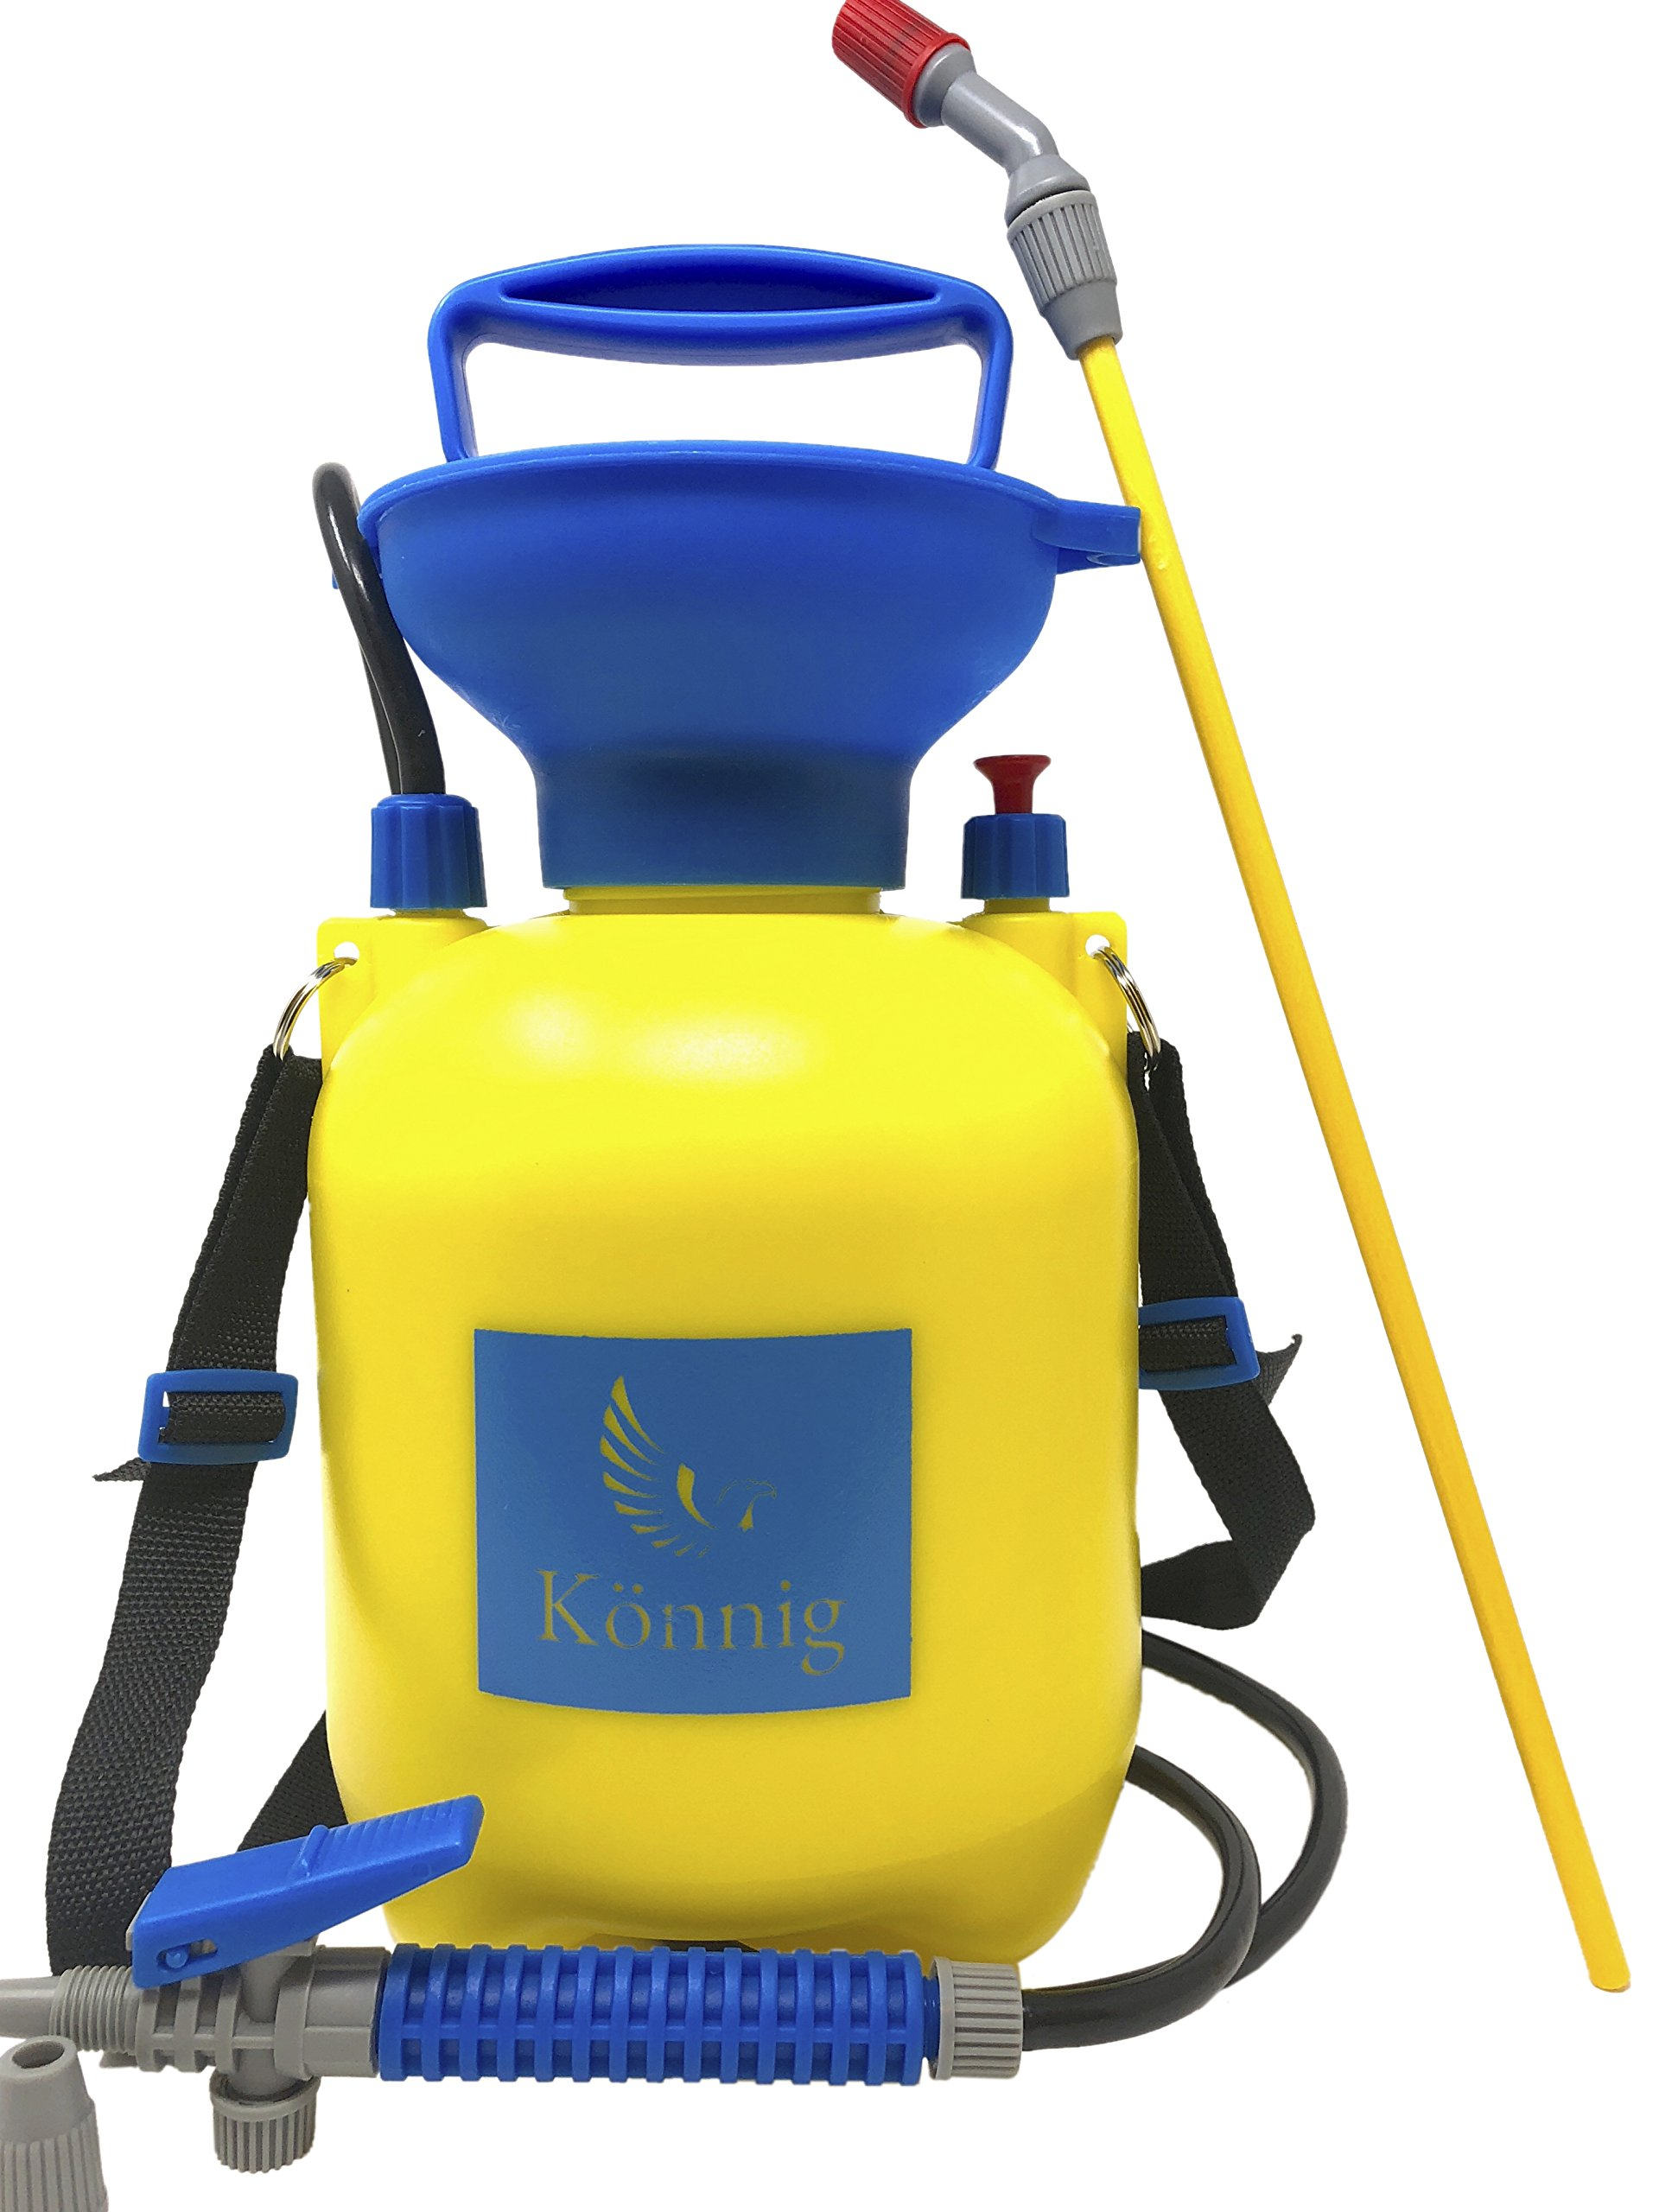 Könnig Lawn and Garden Sprayer 1.3 gallon - Portable Pump Pressure Weed Killer with Nozzle for Water, Pesticides, Chemicals - 1 FREE Pair of One-size Garden Gloves by Könnig